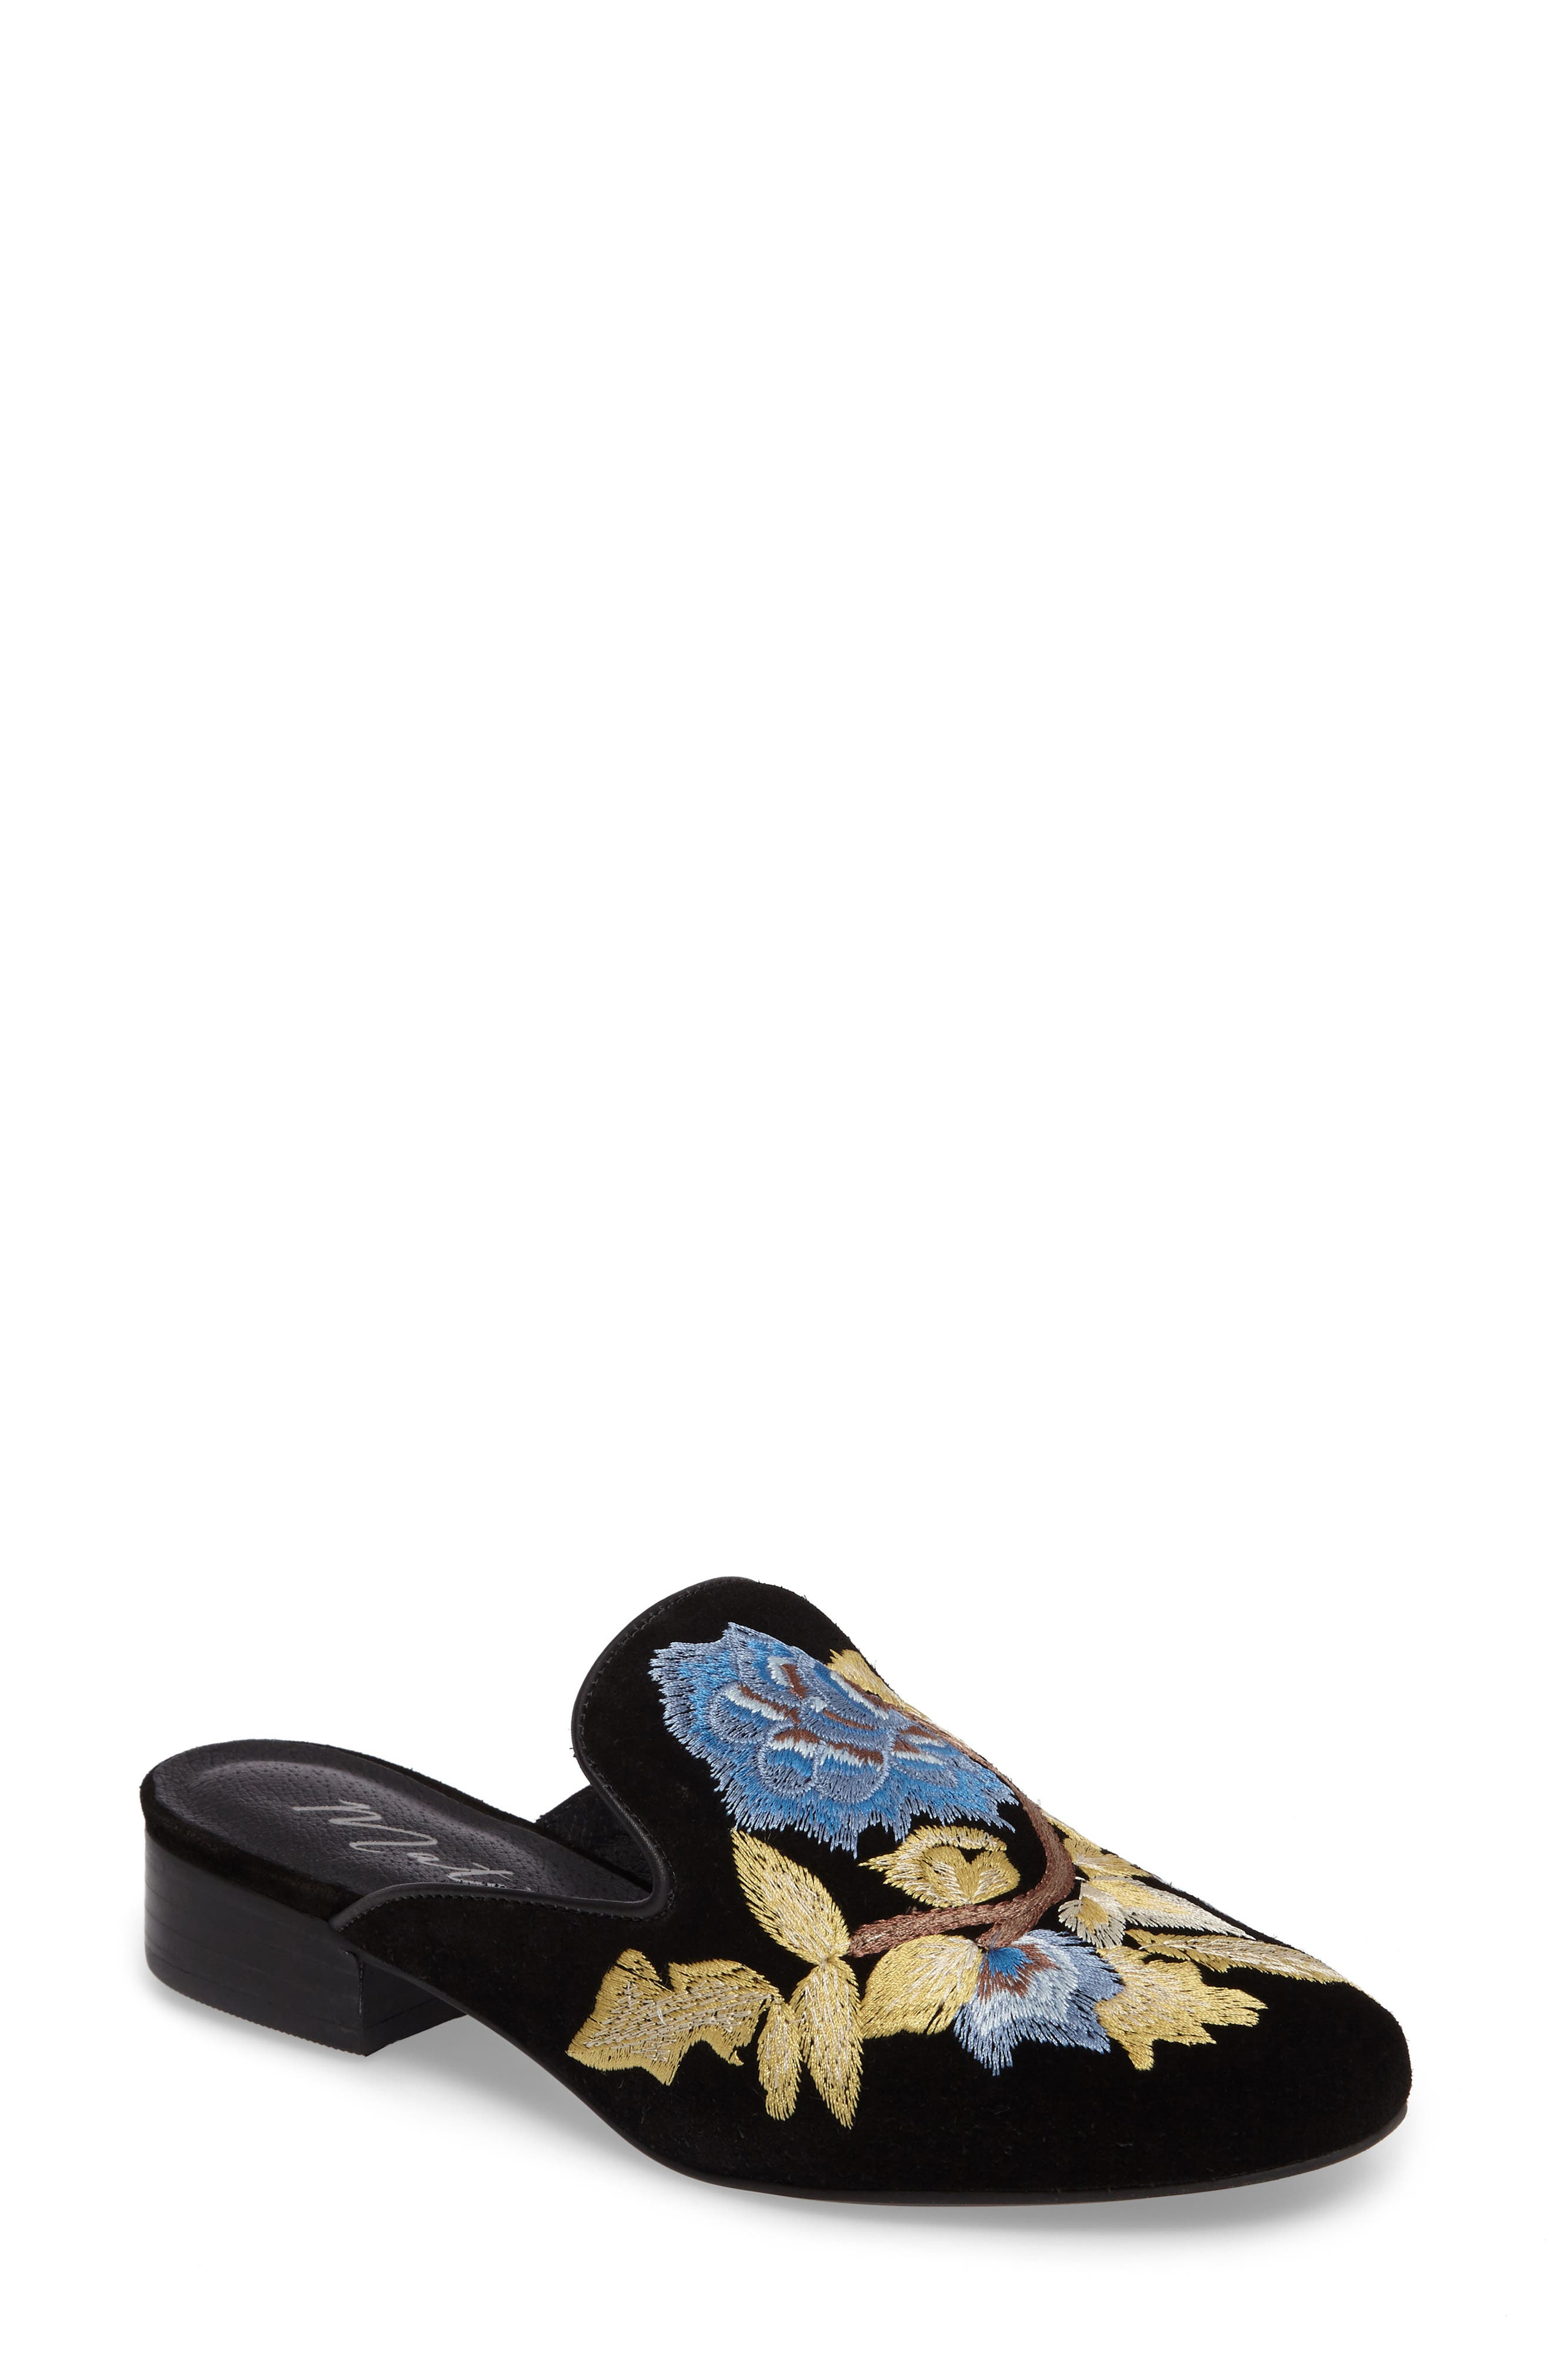 Bianca Embroidered Mule,                             Main thumbnail 1, color,                             017